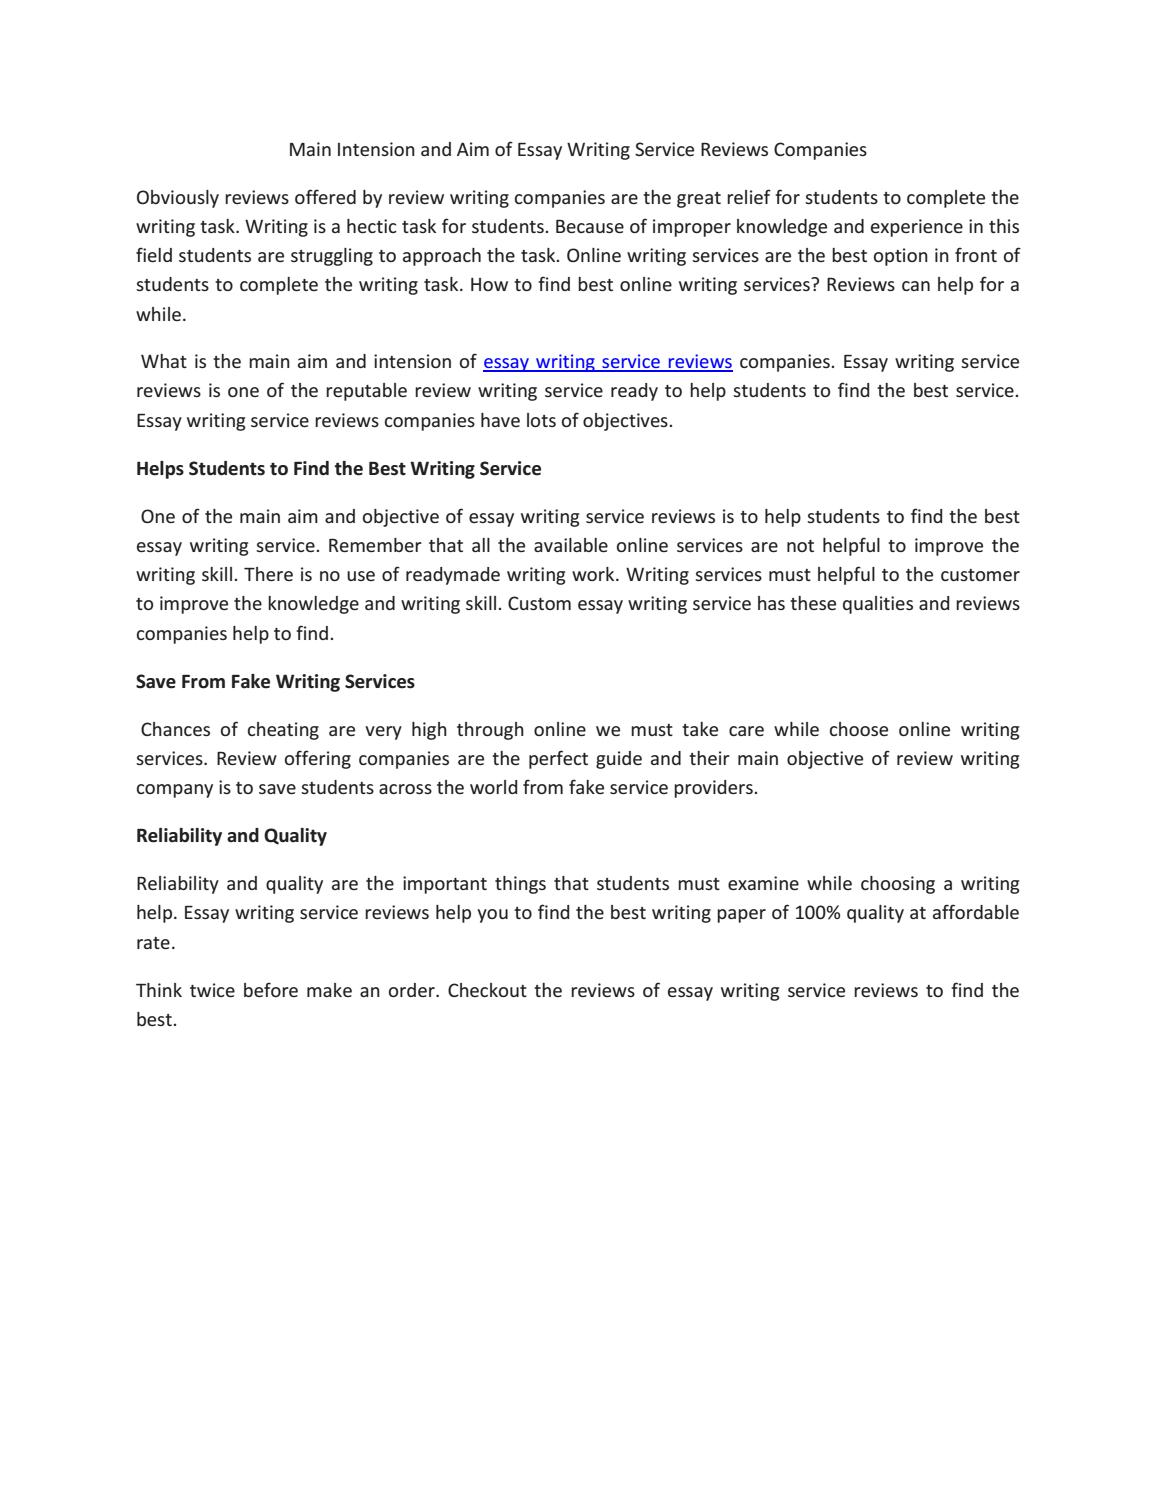 005 Essay Example Best Help Review Page 1 Impressive Writing Services Uk Reviews Service Full